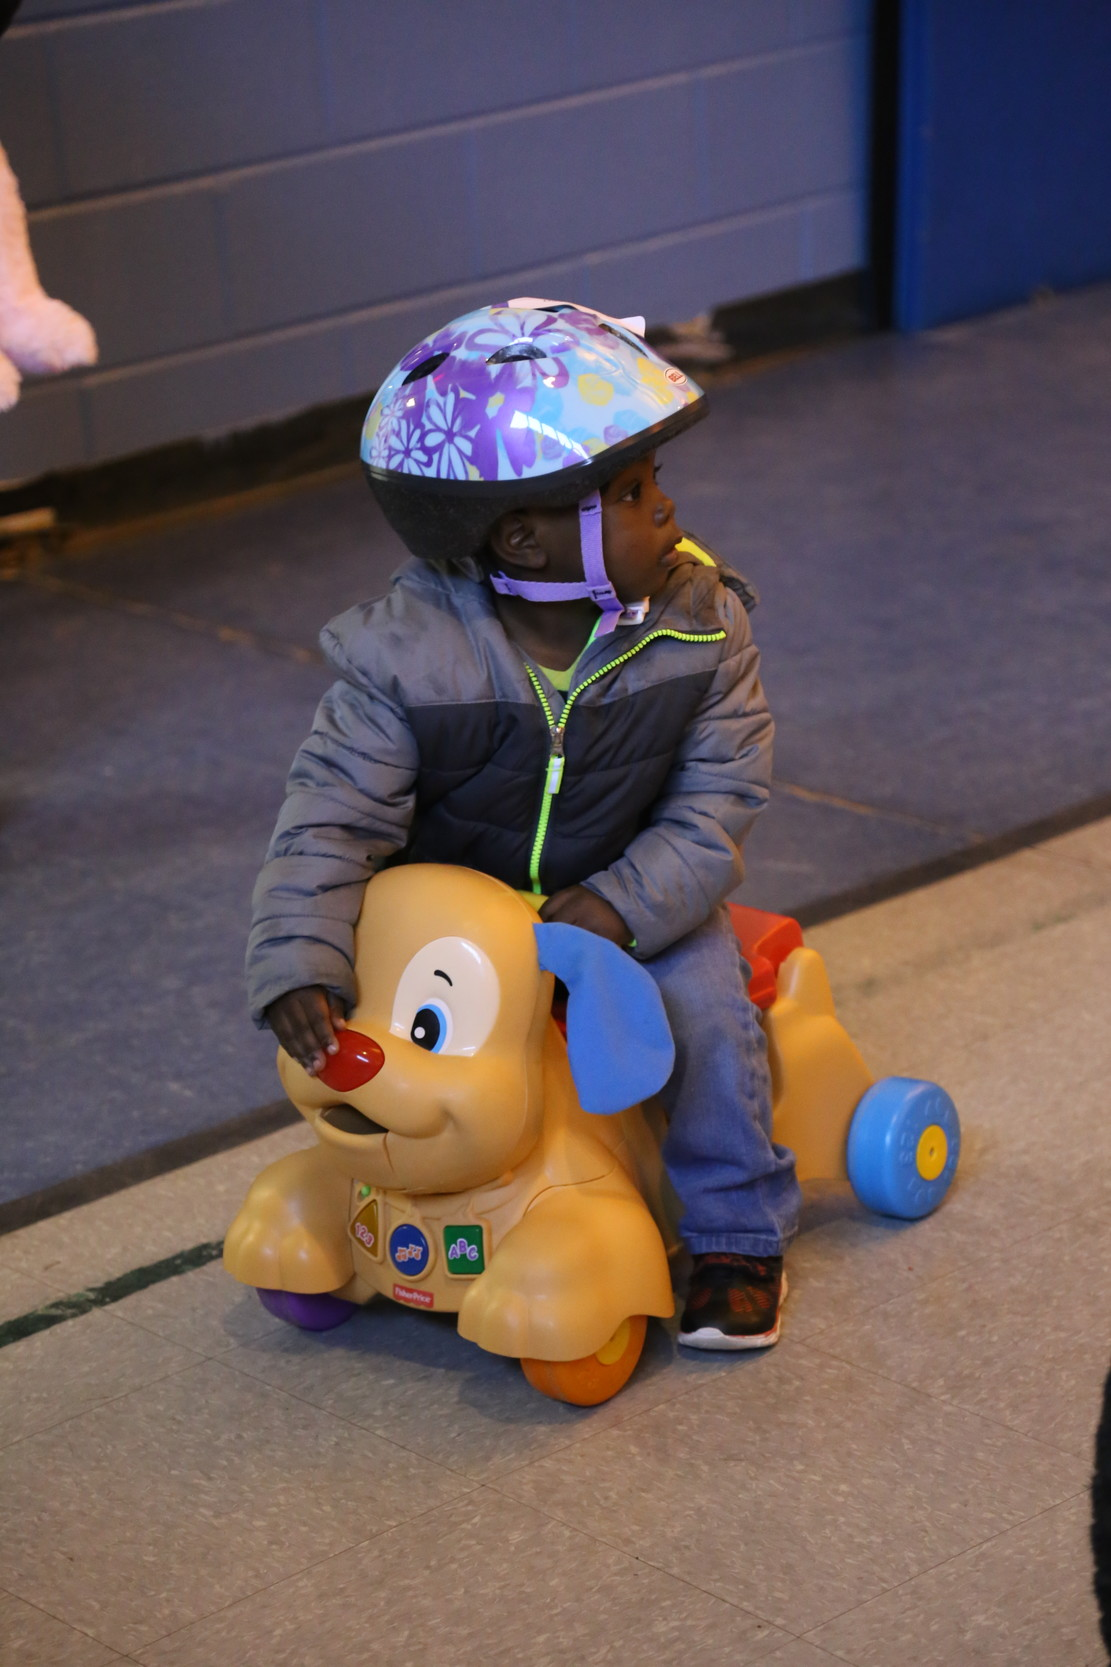 Riding toys for small children were also available during the giveaway.